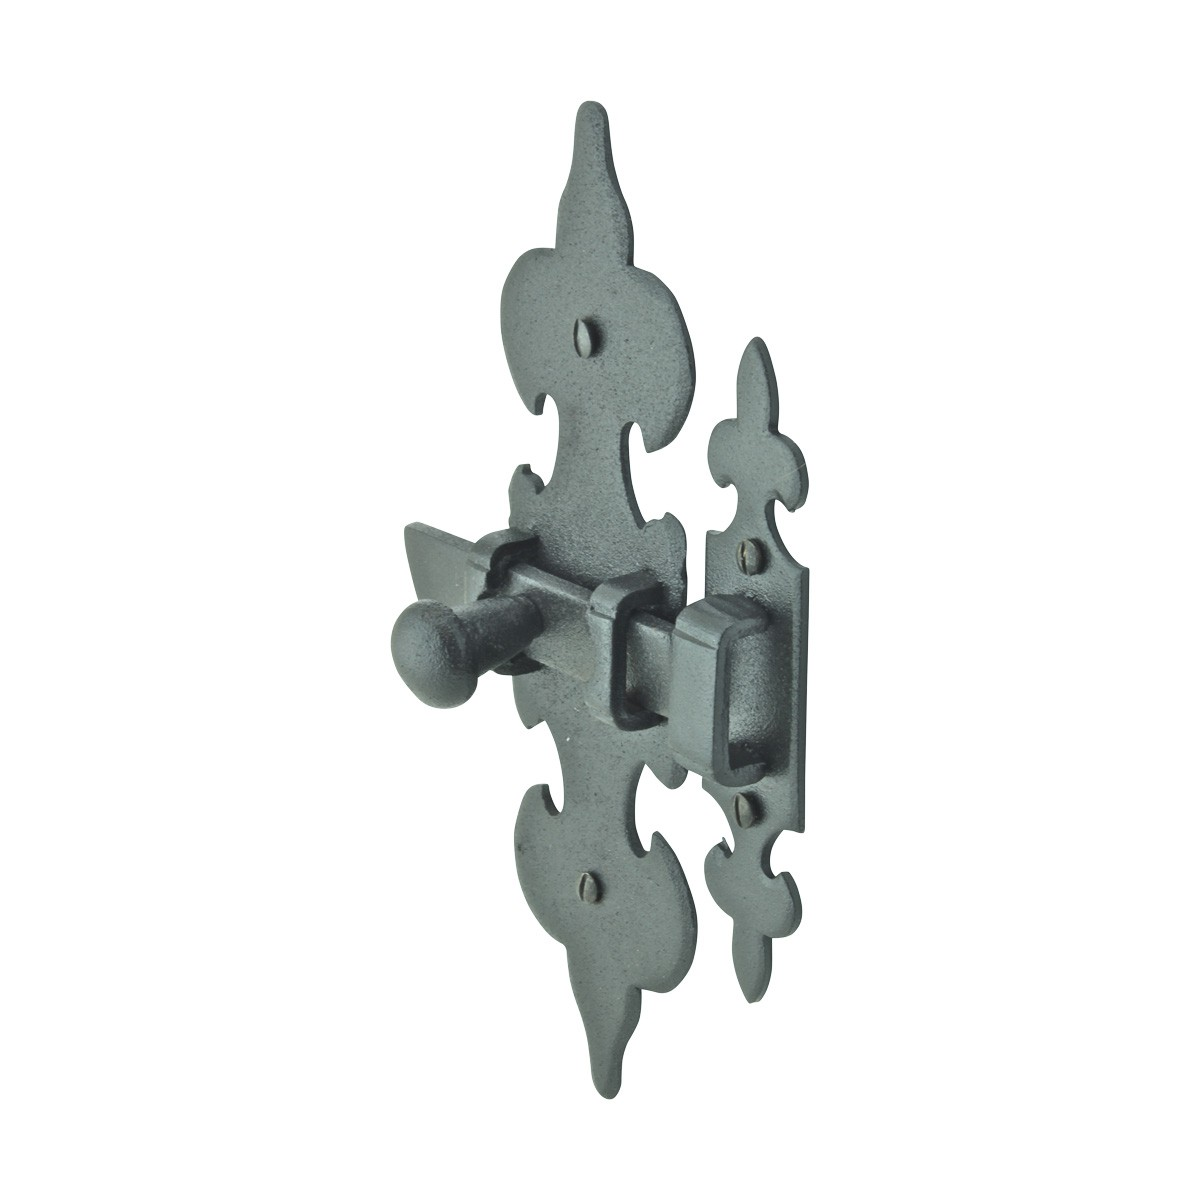 Cabinet Latch Wrought Iron Black Fleur de Lis 6 Cabinet Latch Cabinet Hardware Black Cabinet Latche